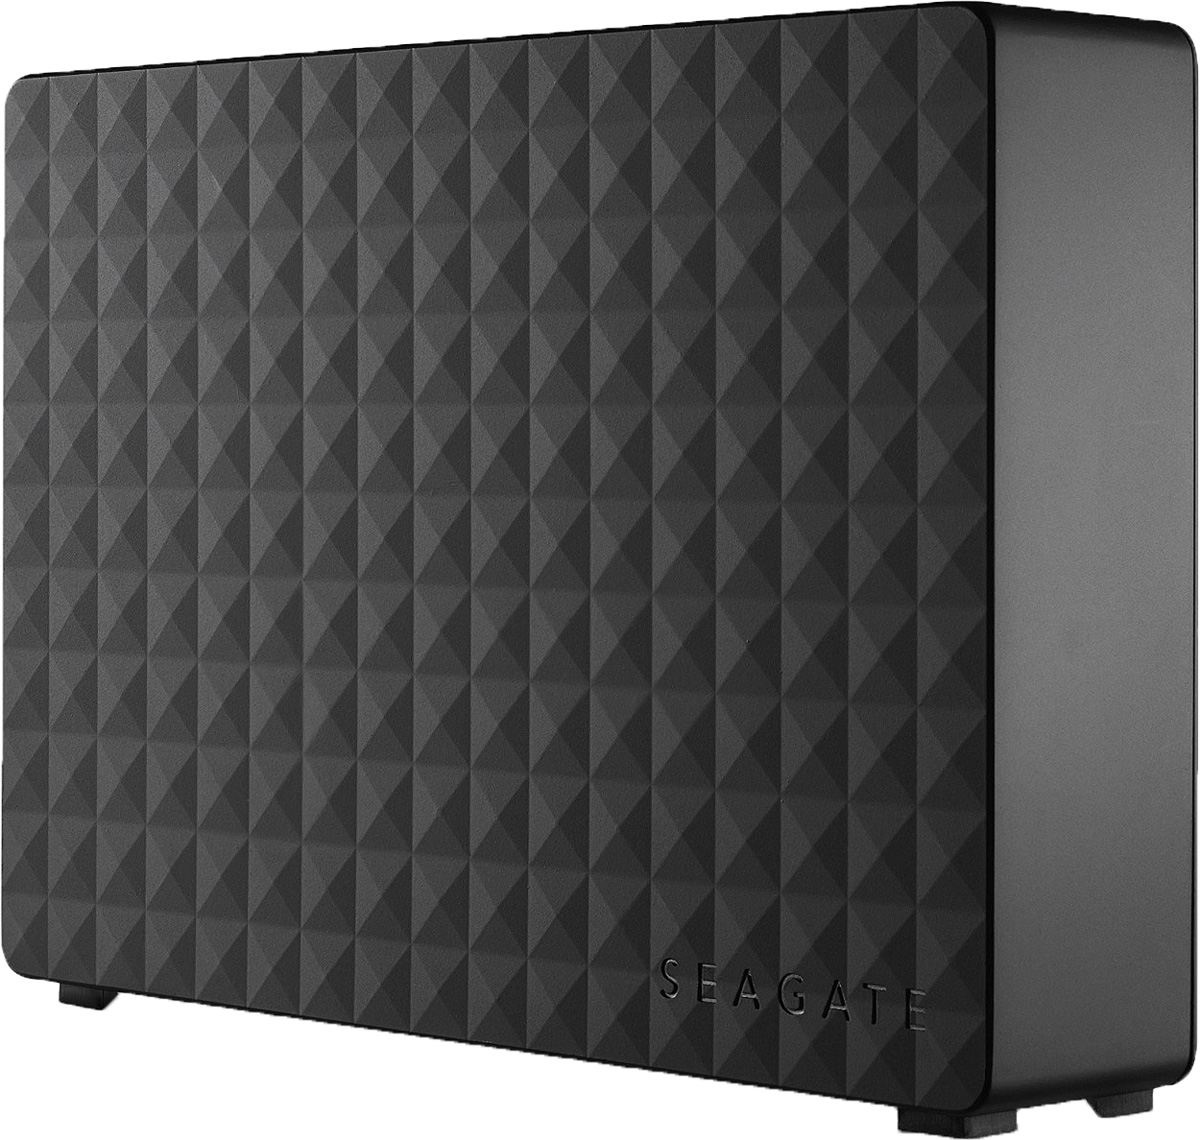 Zakazat.ru Seagate Expansion Desk 4TB USB 3.0 внешний жесткий диск (STEB4000200)